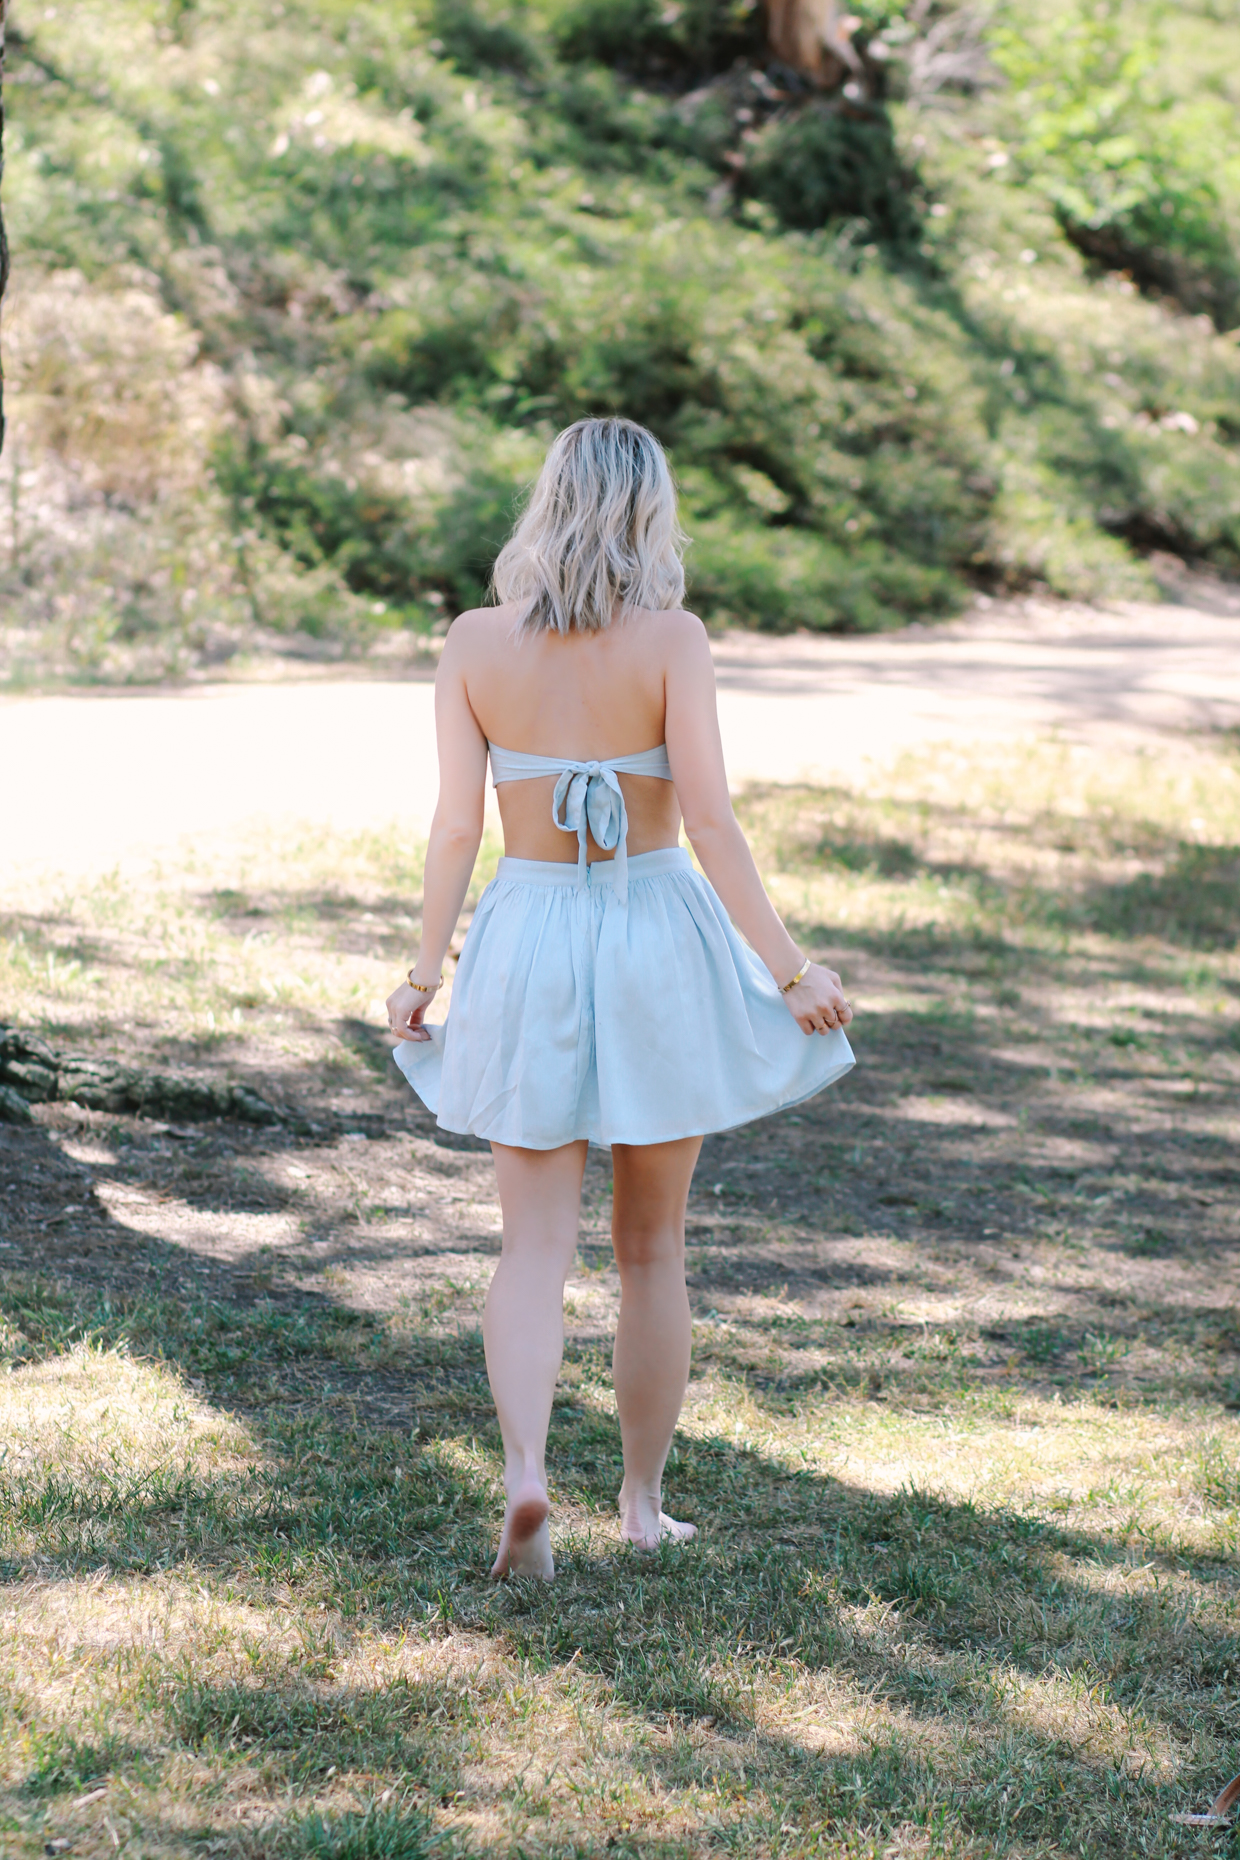 Blondie in the City | Baby Blue Bandeau and Skirt Set from @shoptobi | Summer / Festival Inspired Outfit